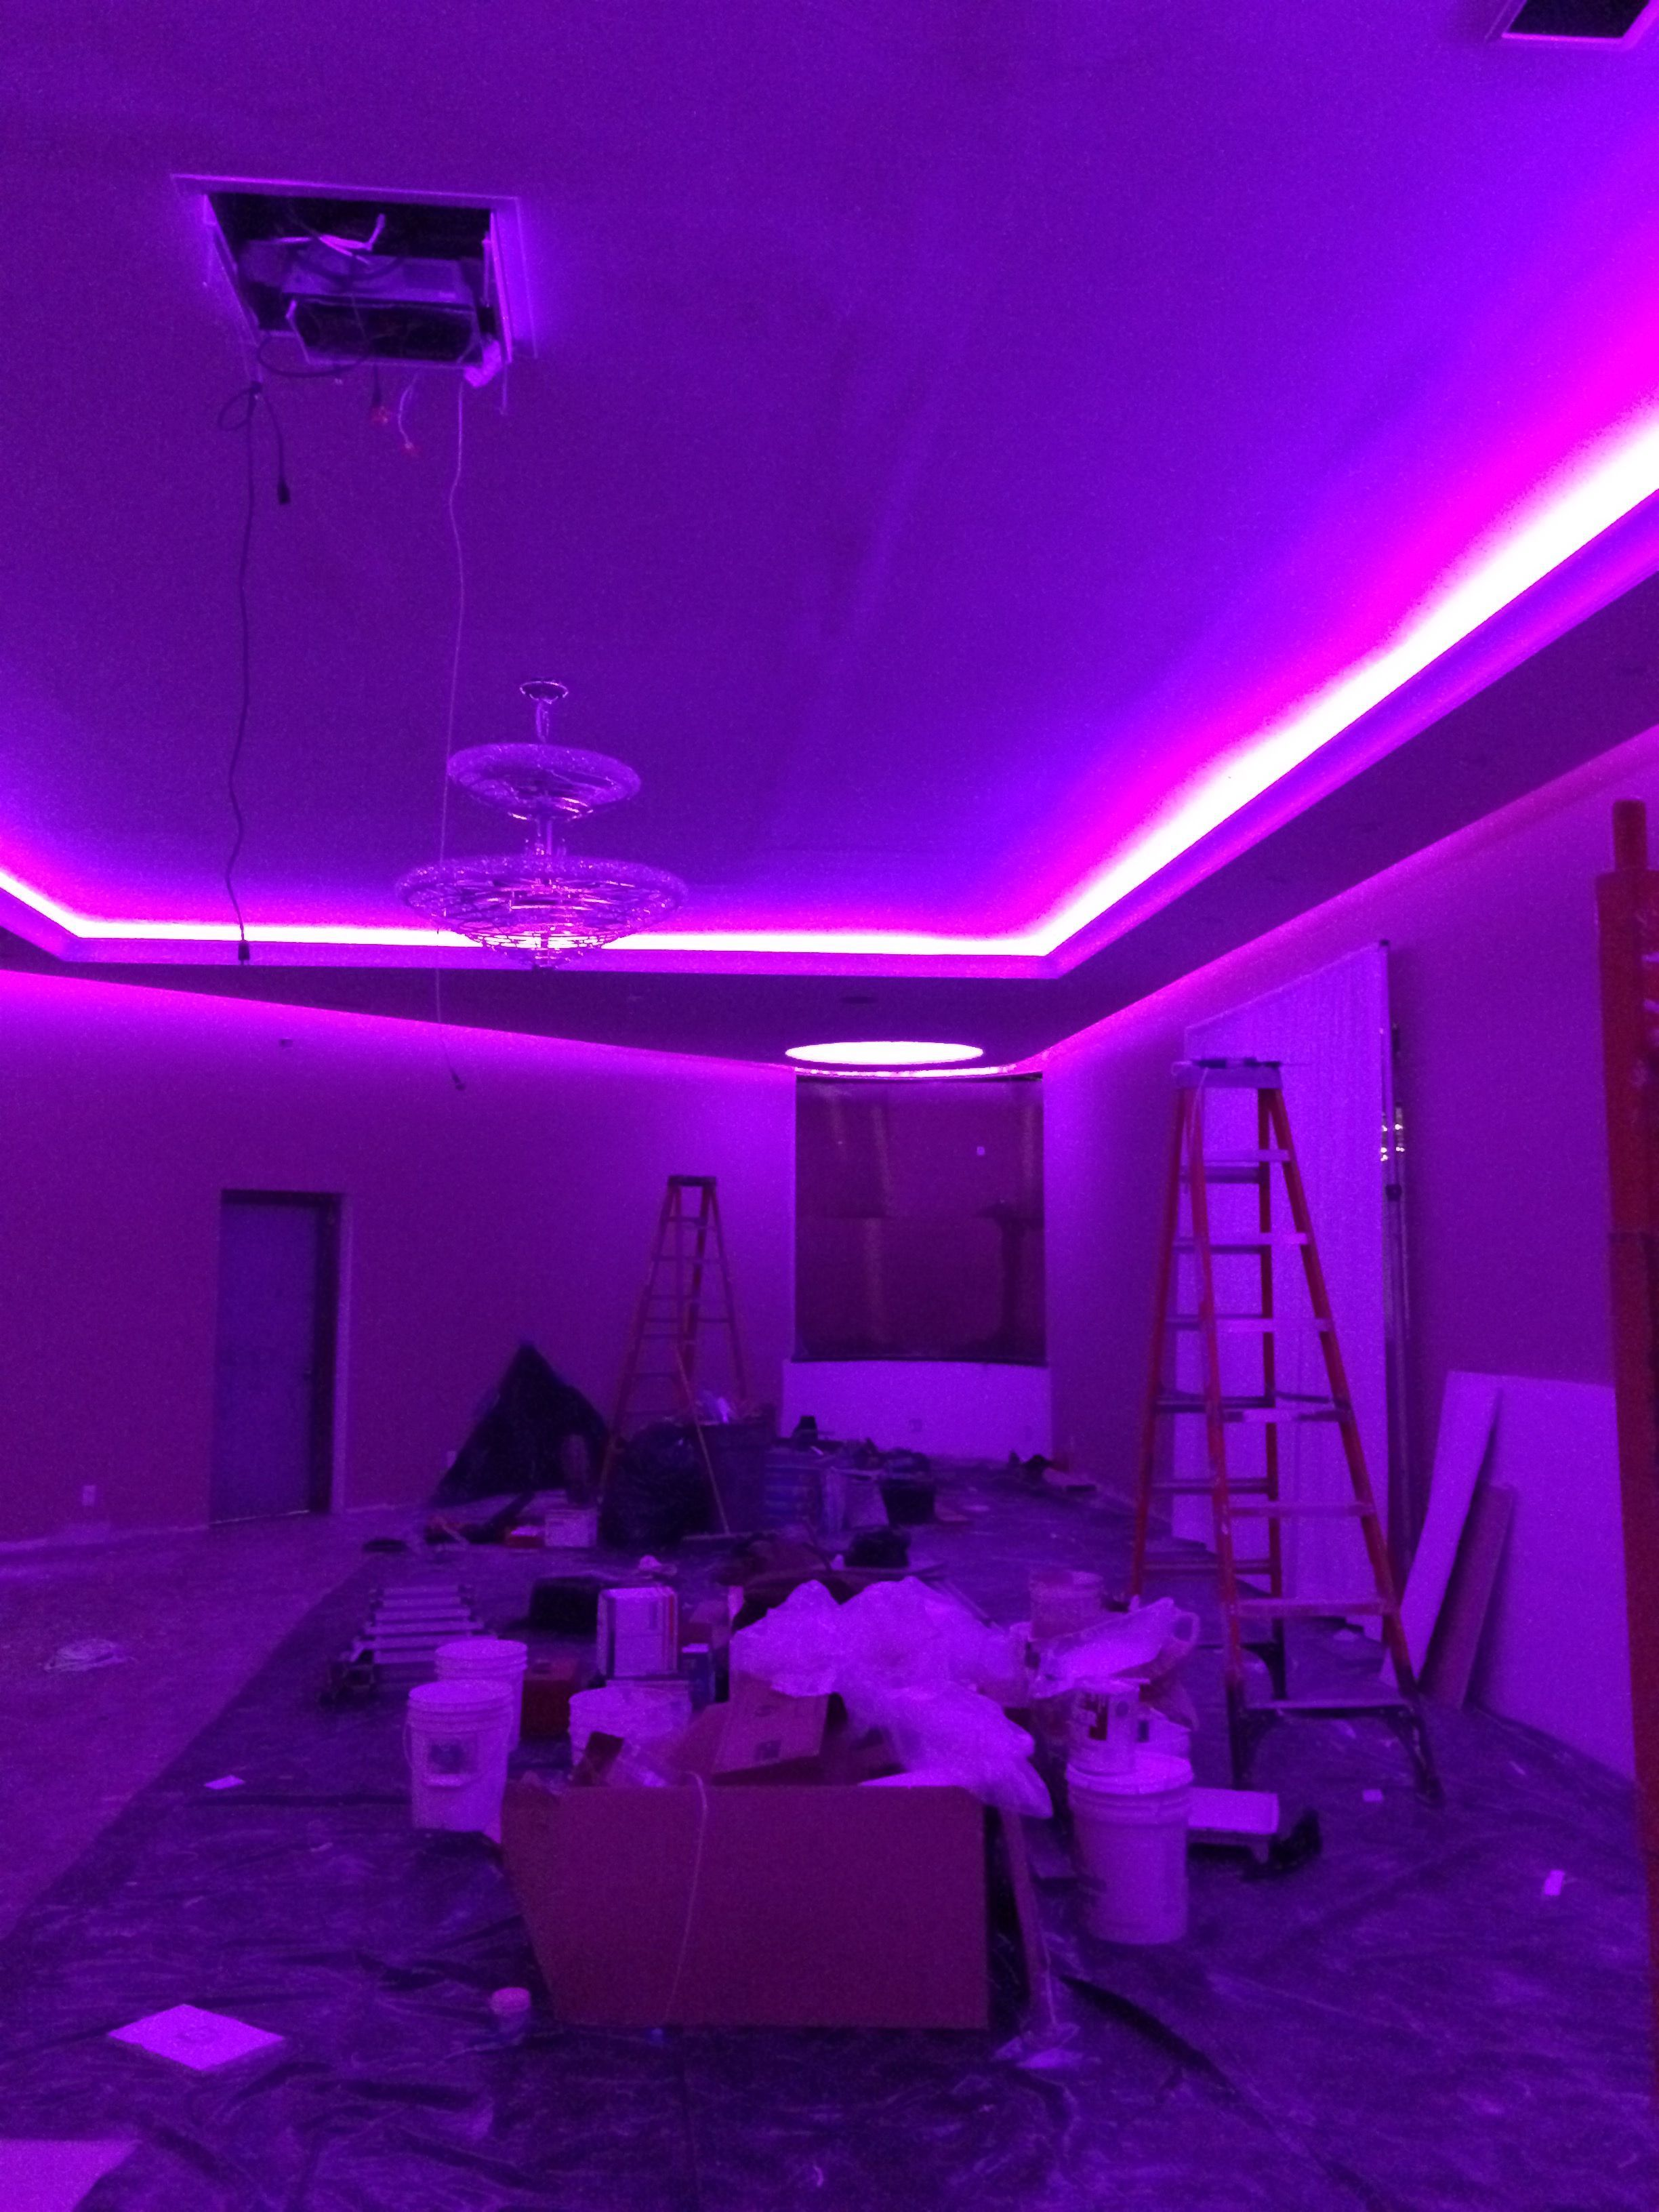 Led Tape In Soffet Millions And